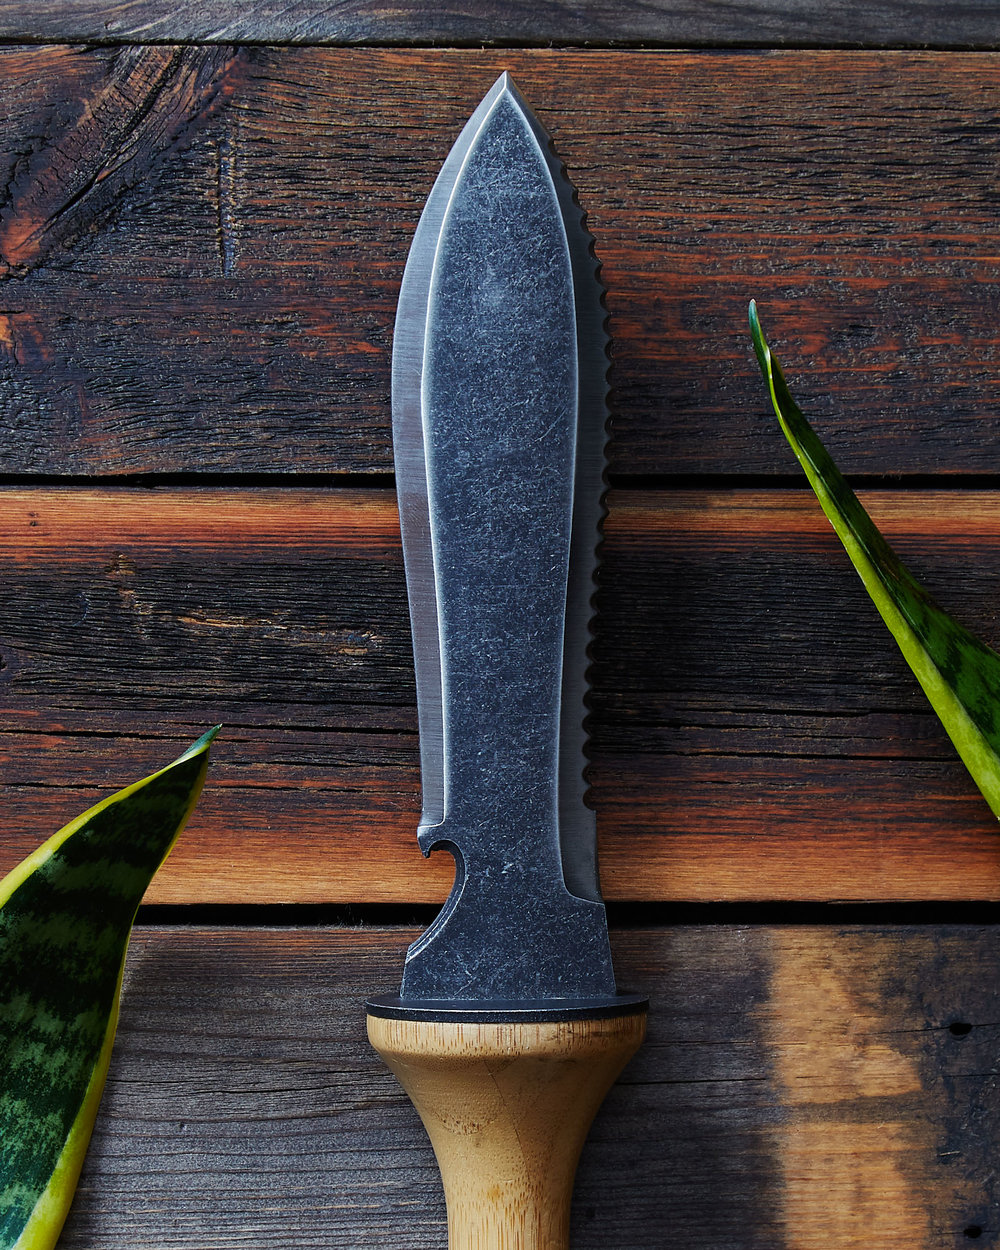 terra-knife-gardening-leaf-outdoors.jpg